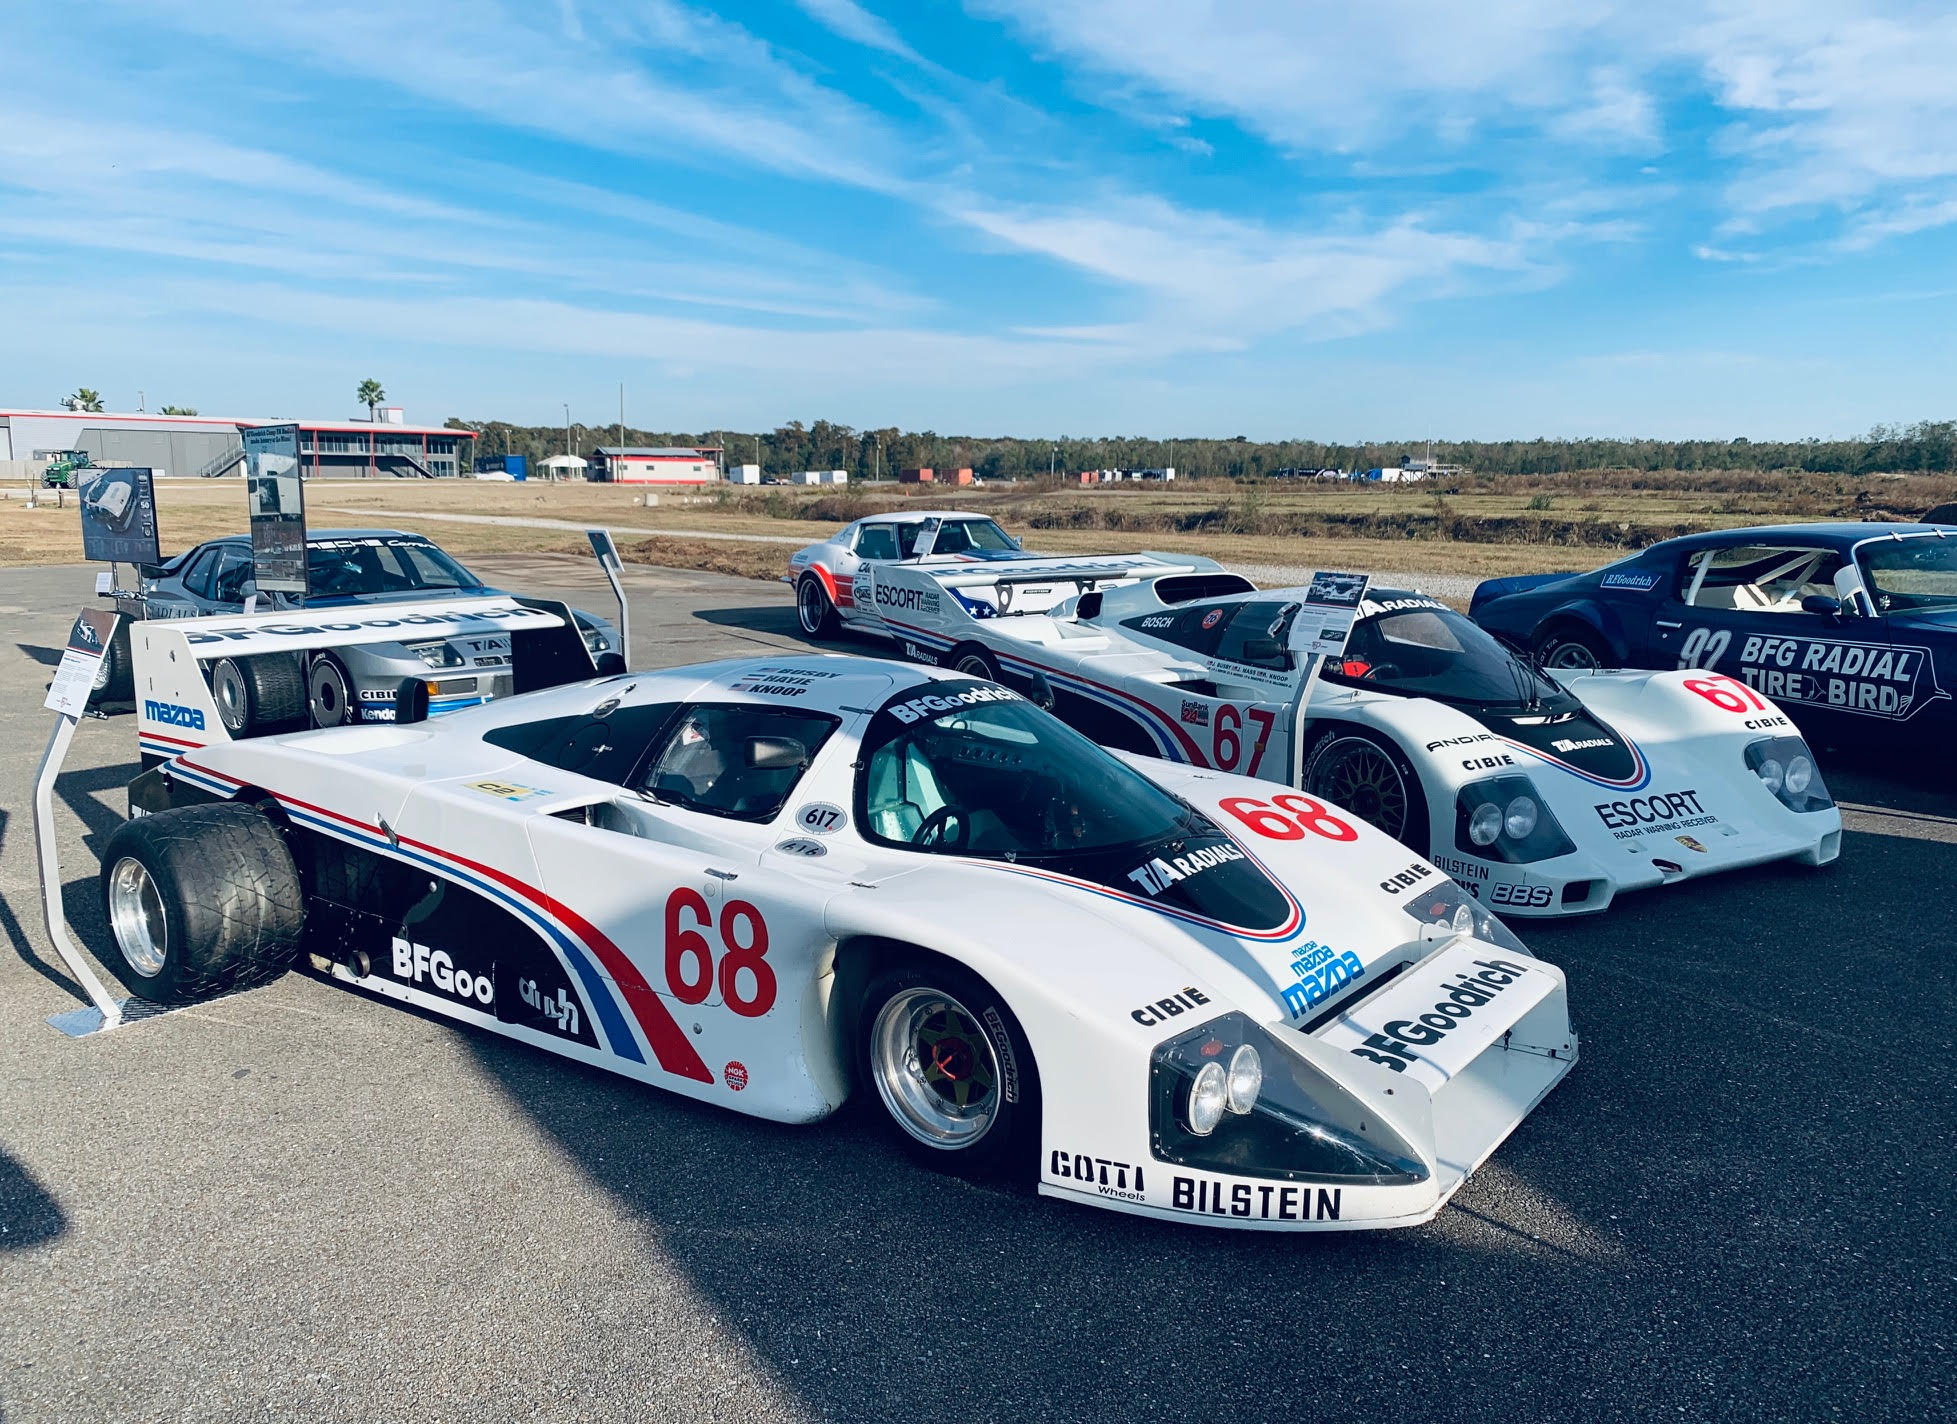 BFGoodrich had their historic lineup of radial tires on the race cars they've supported over the years.